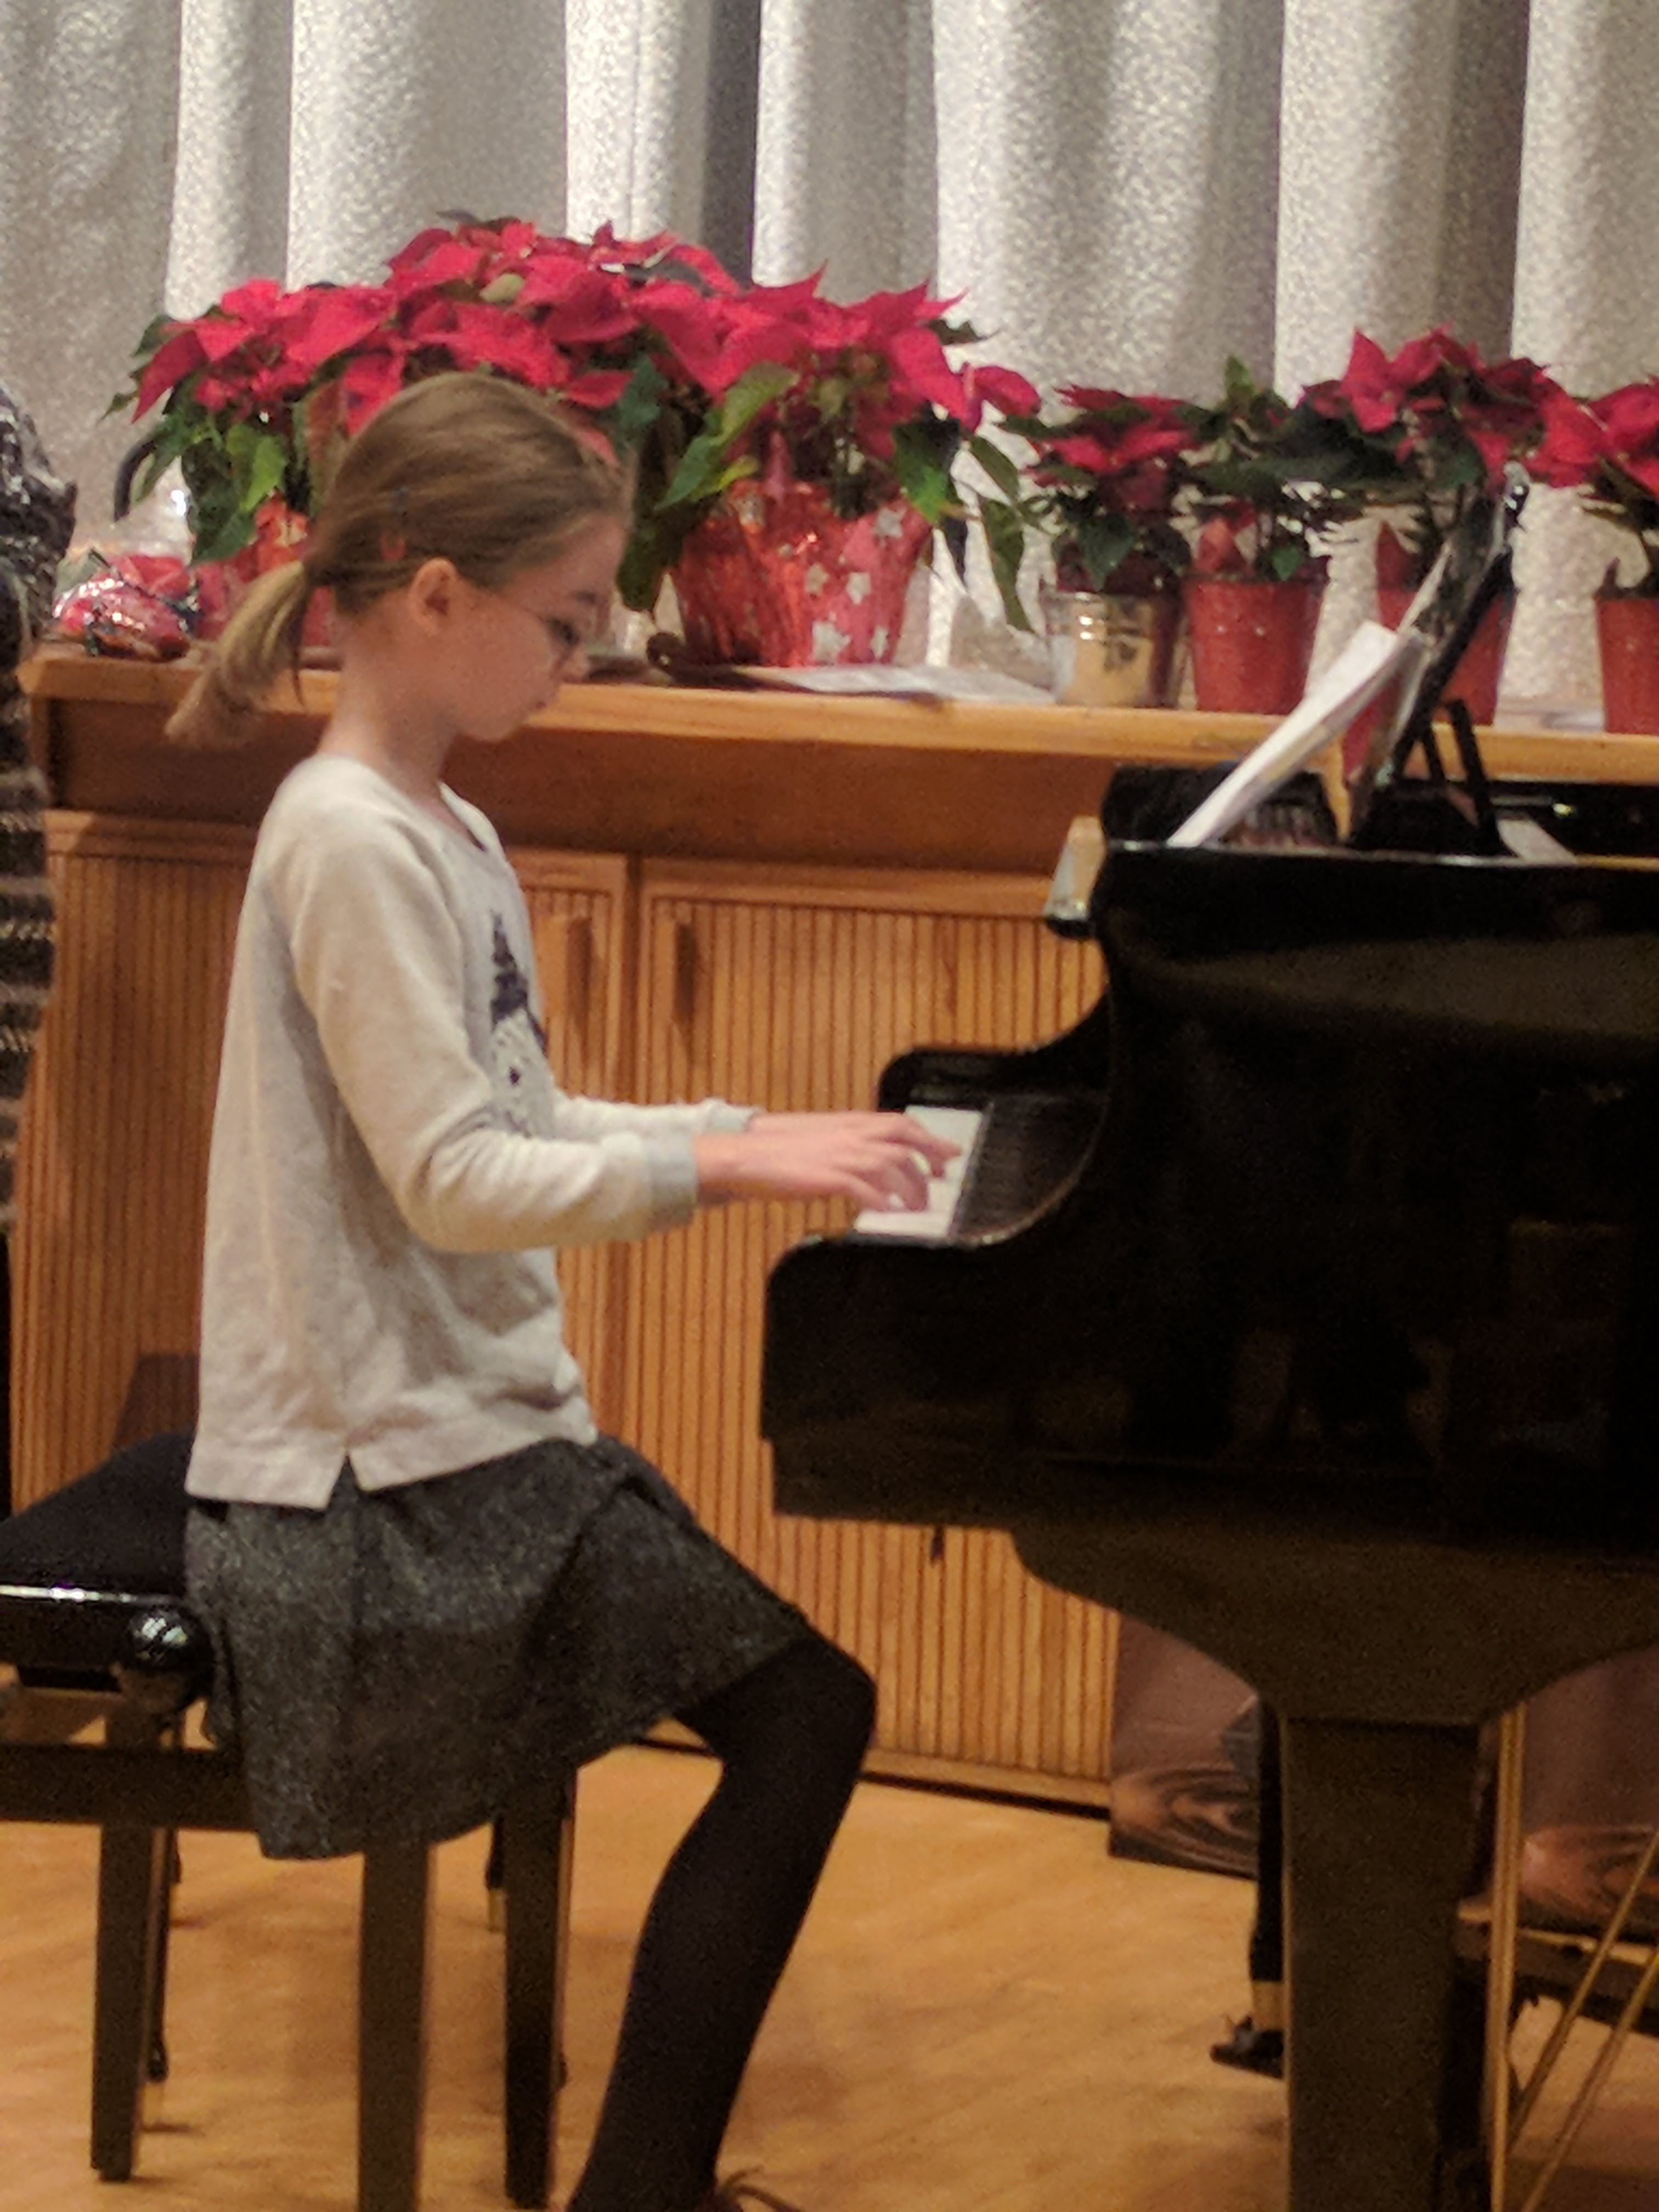 Young girl showing her piano skills